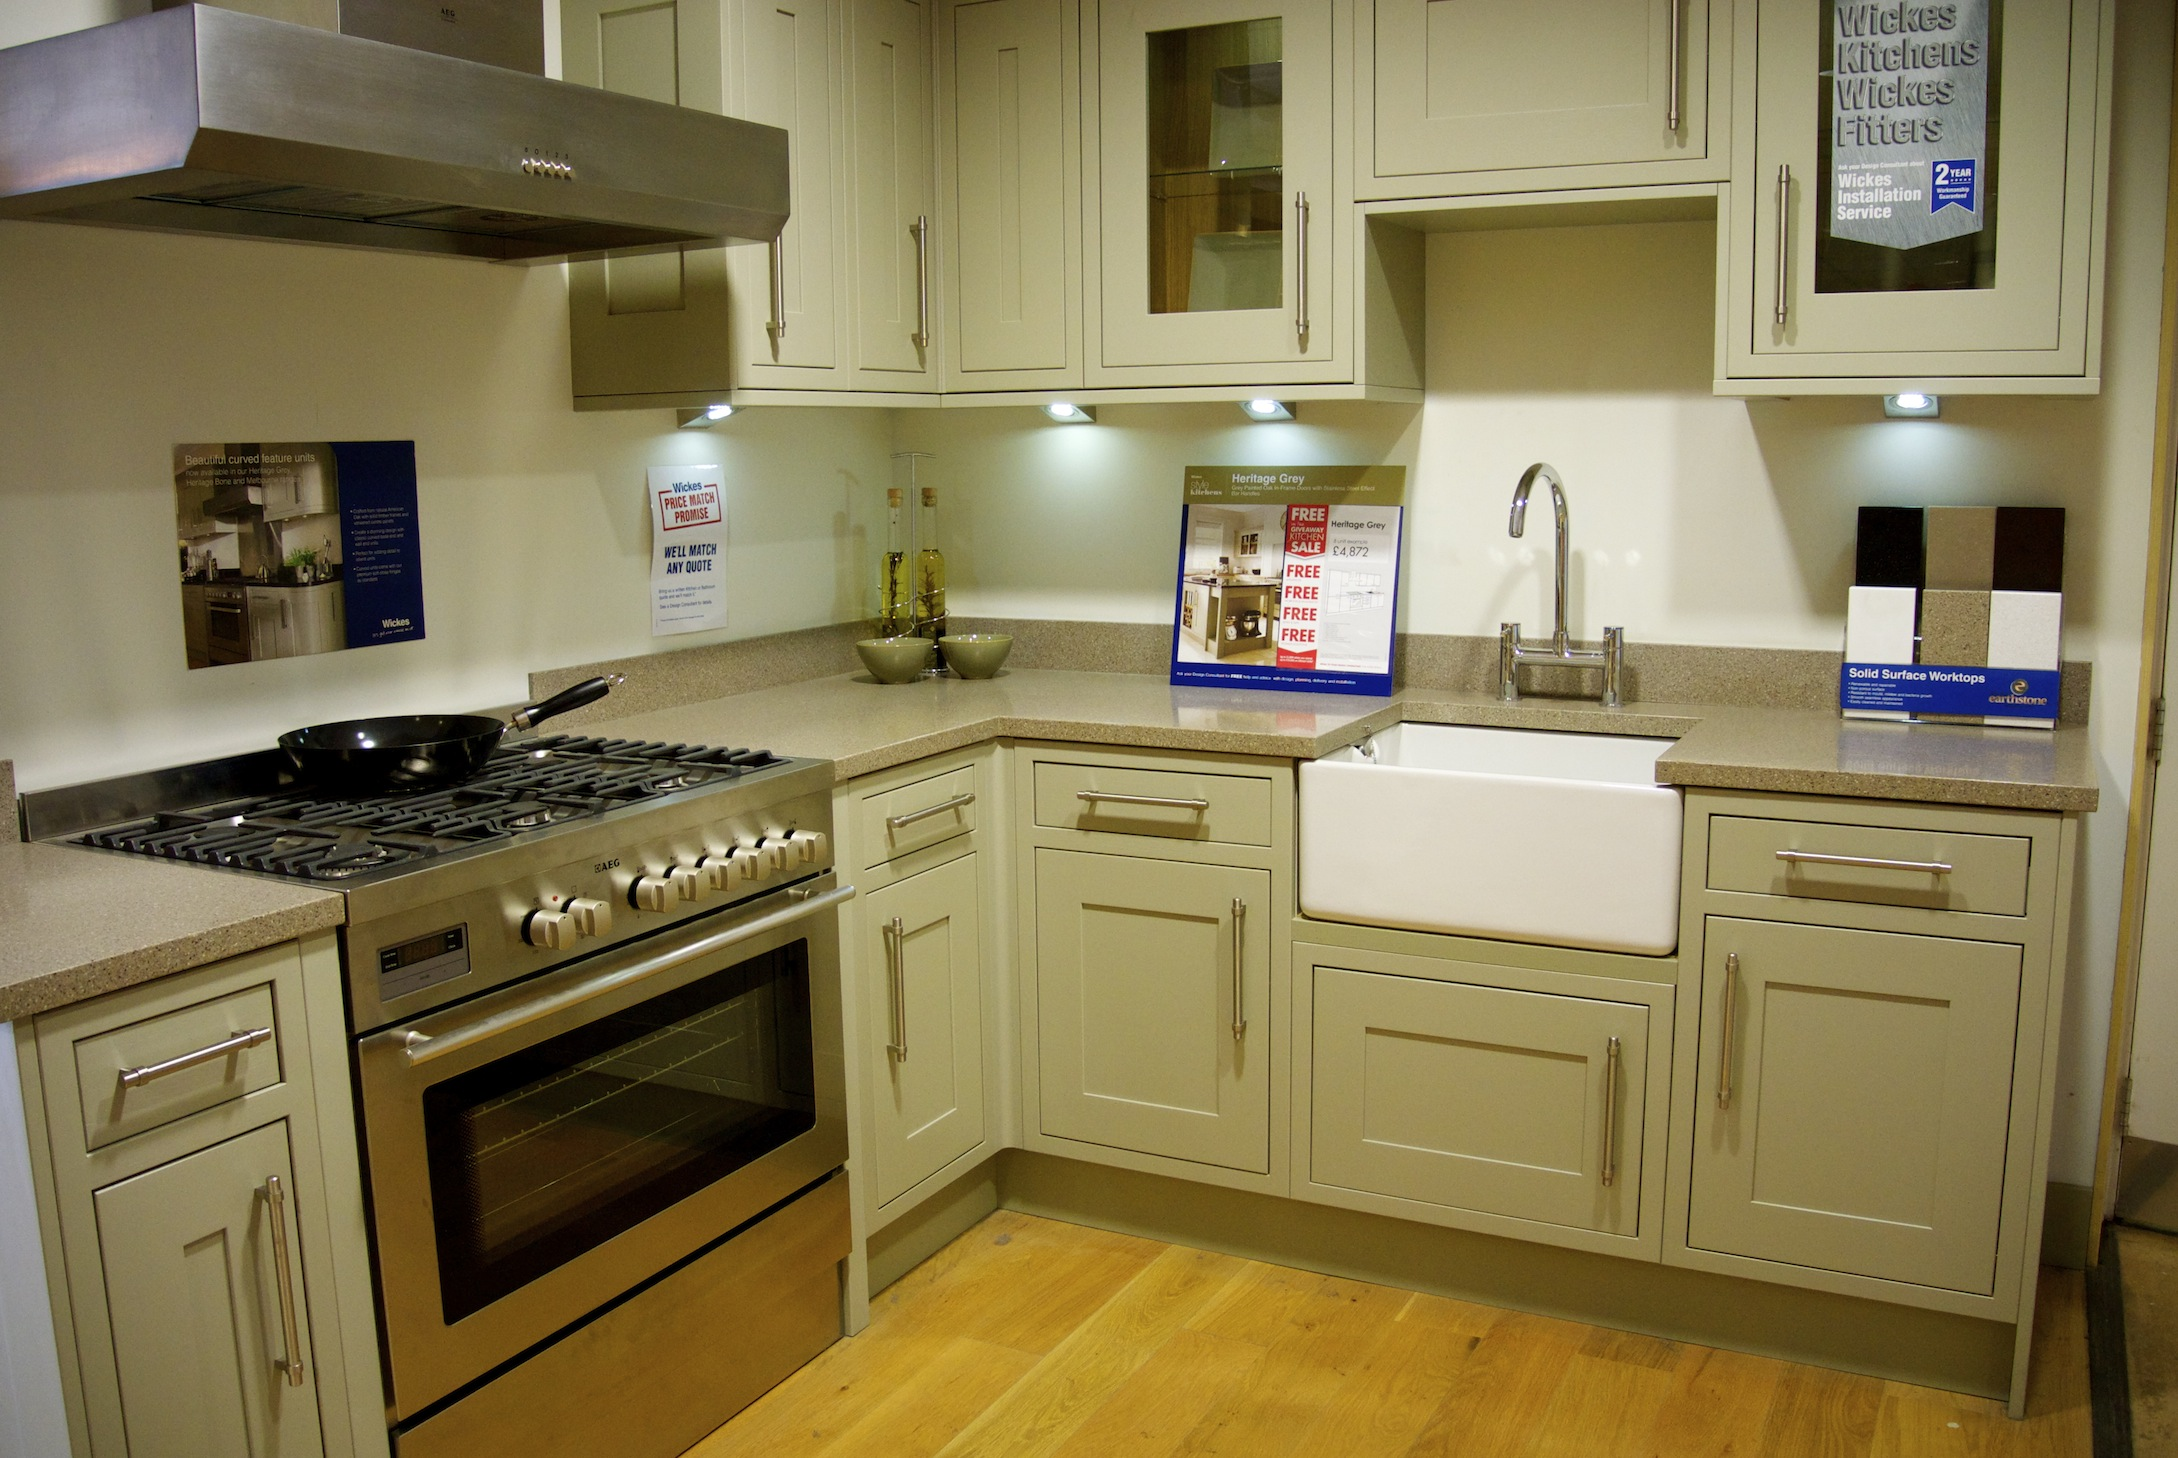 301 moved permanently sofia white gloss kitchen wickes co uk kitchen